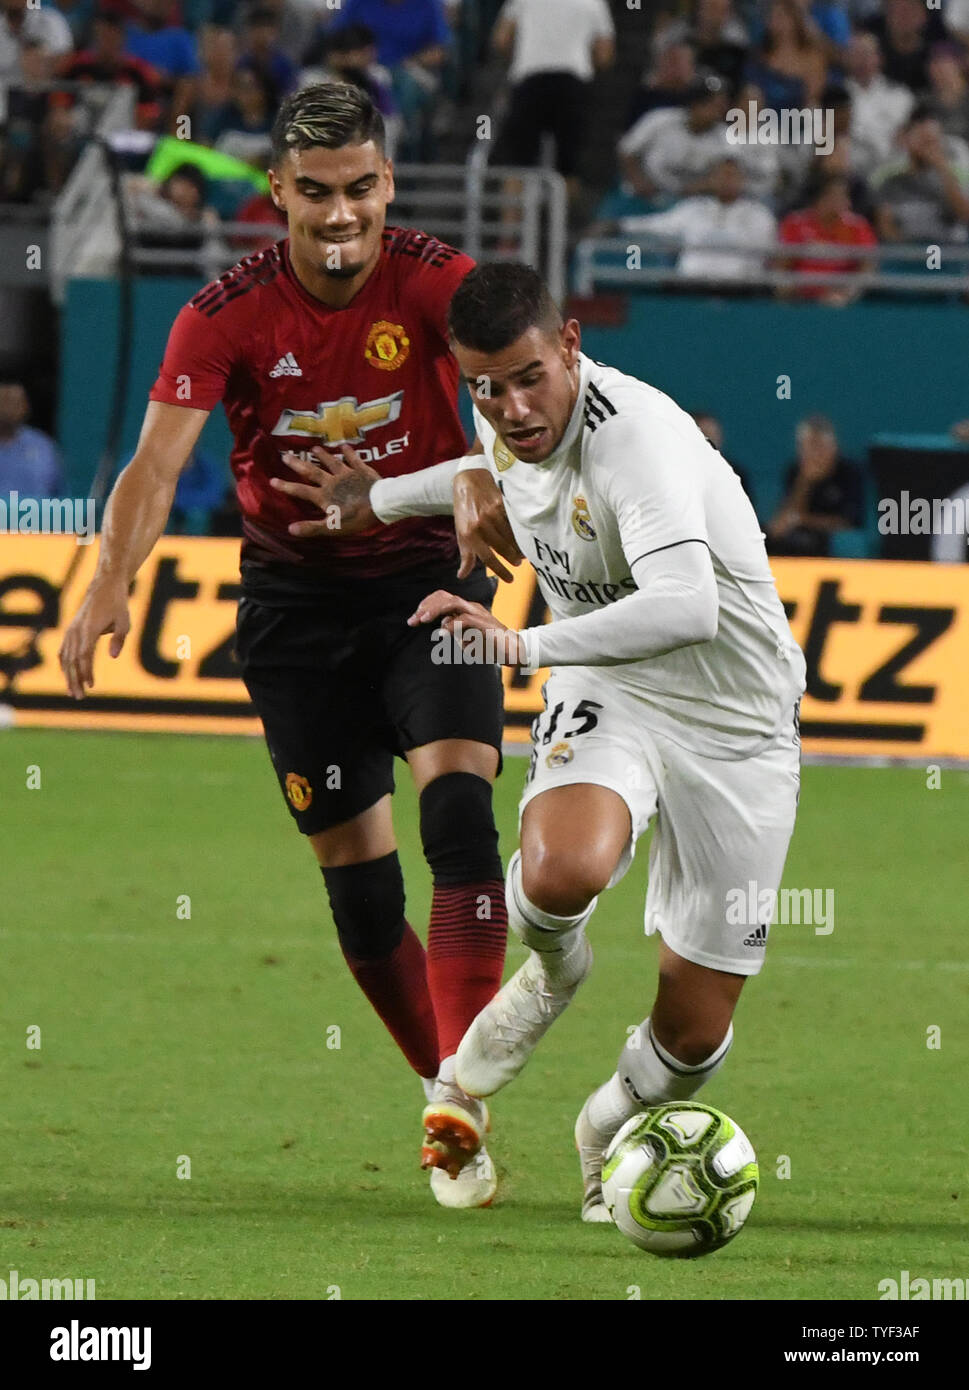 Page 2 Andreas Pereira High Resolution Stock Photography And